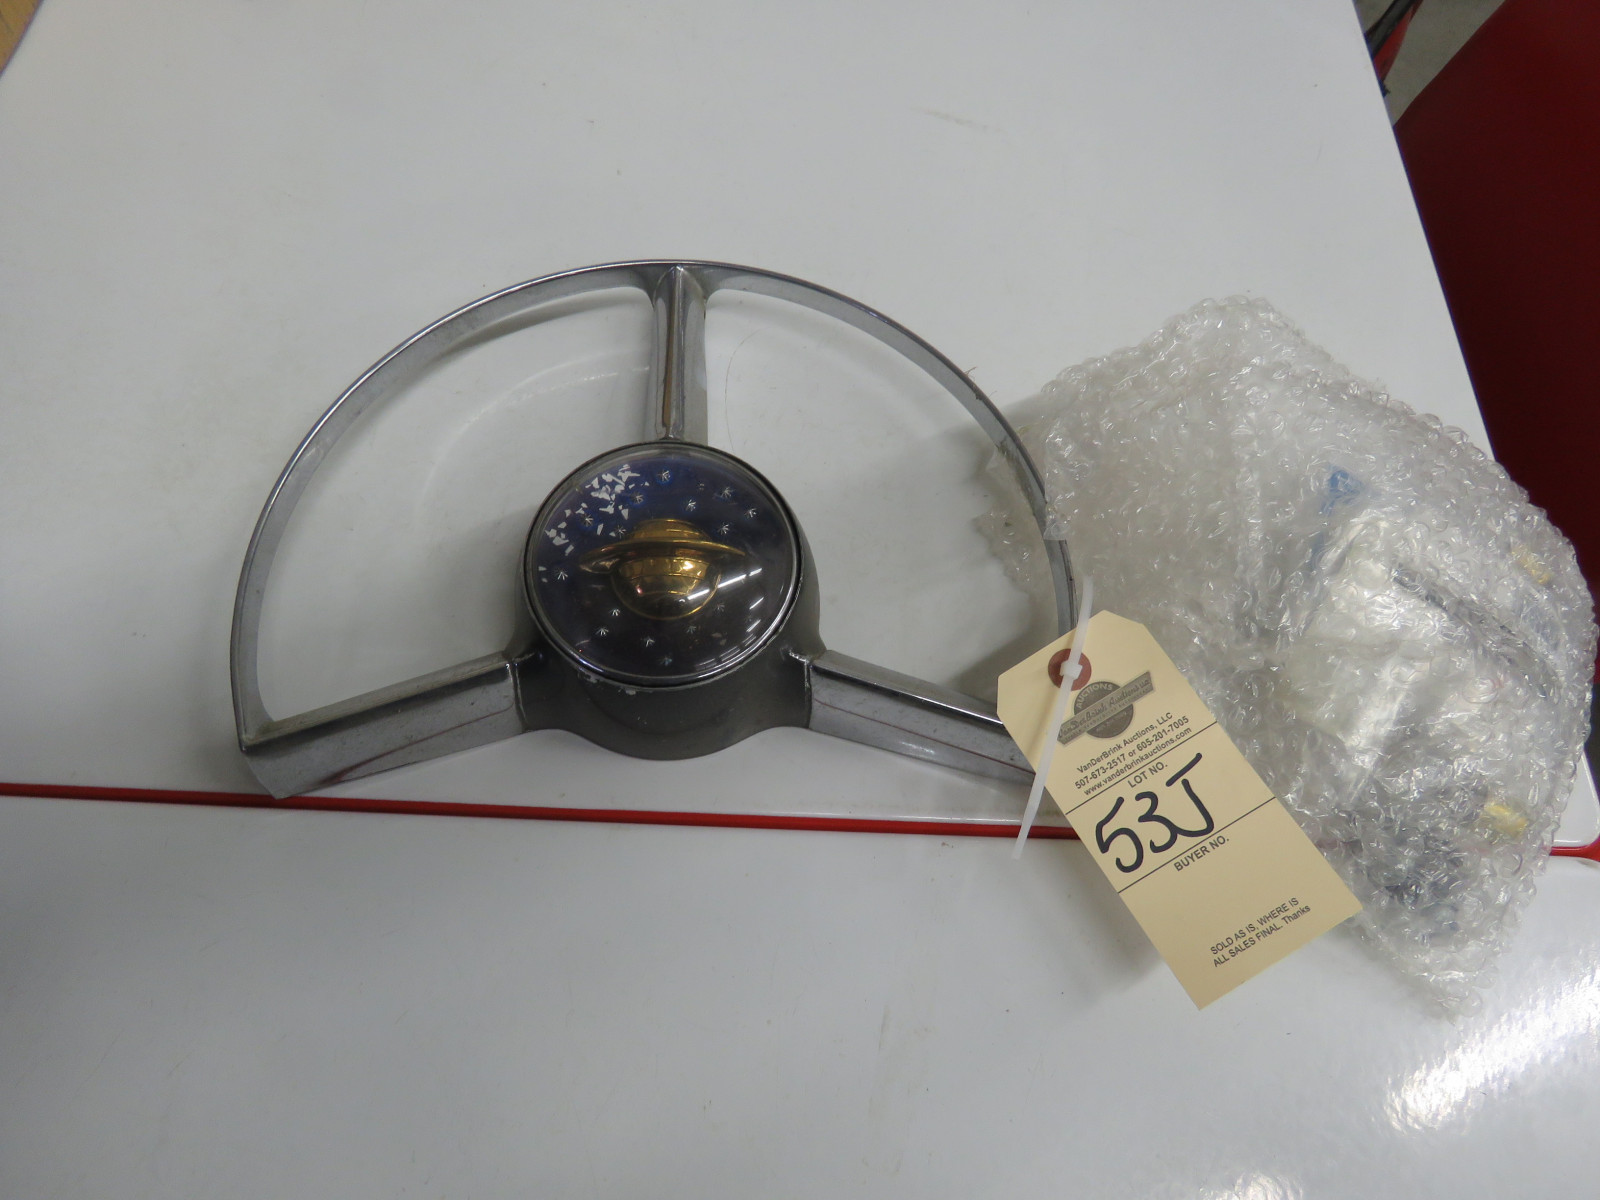 Original Oldsmobile Steering Wheel Center Ring - Image 1